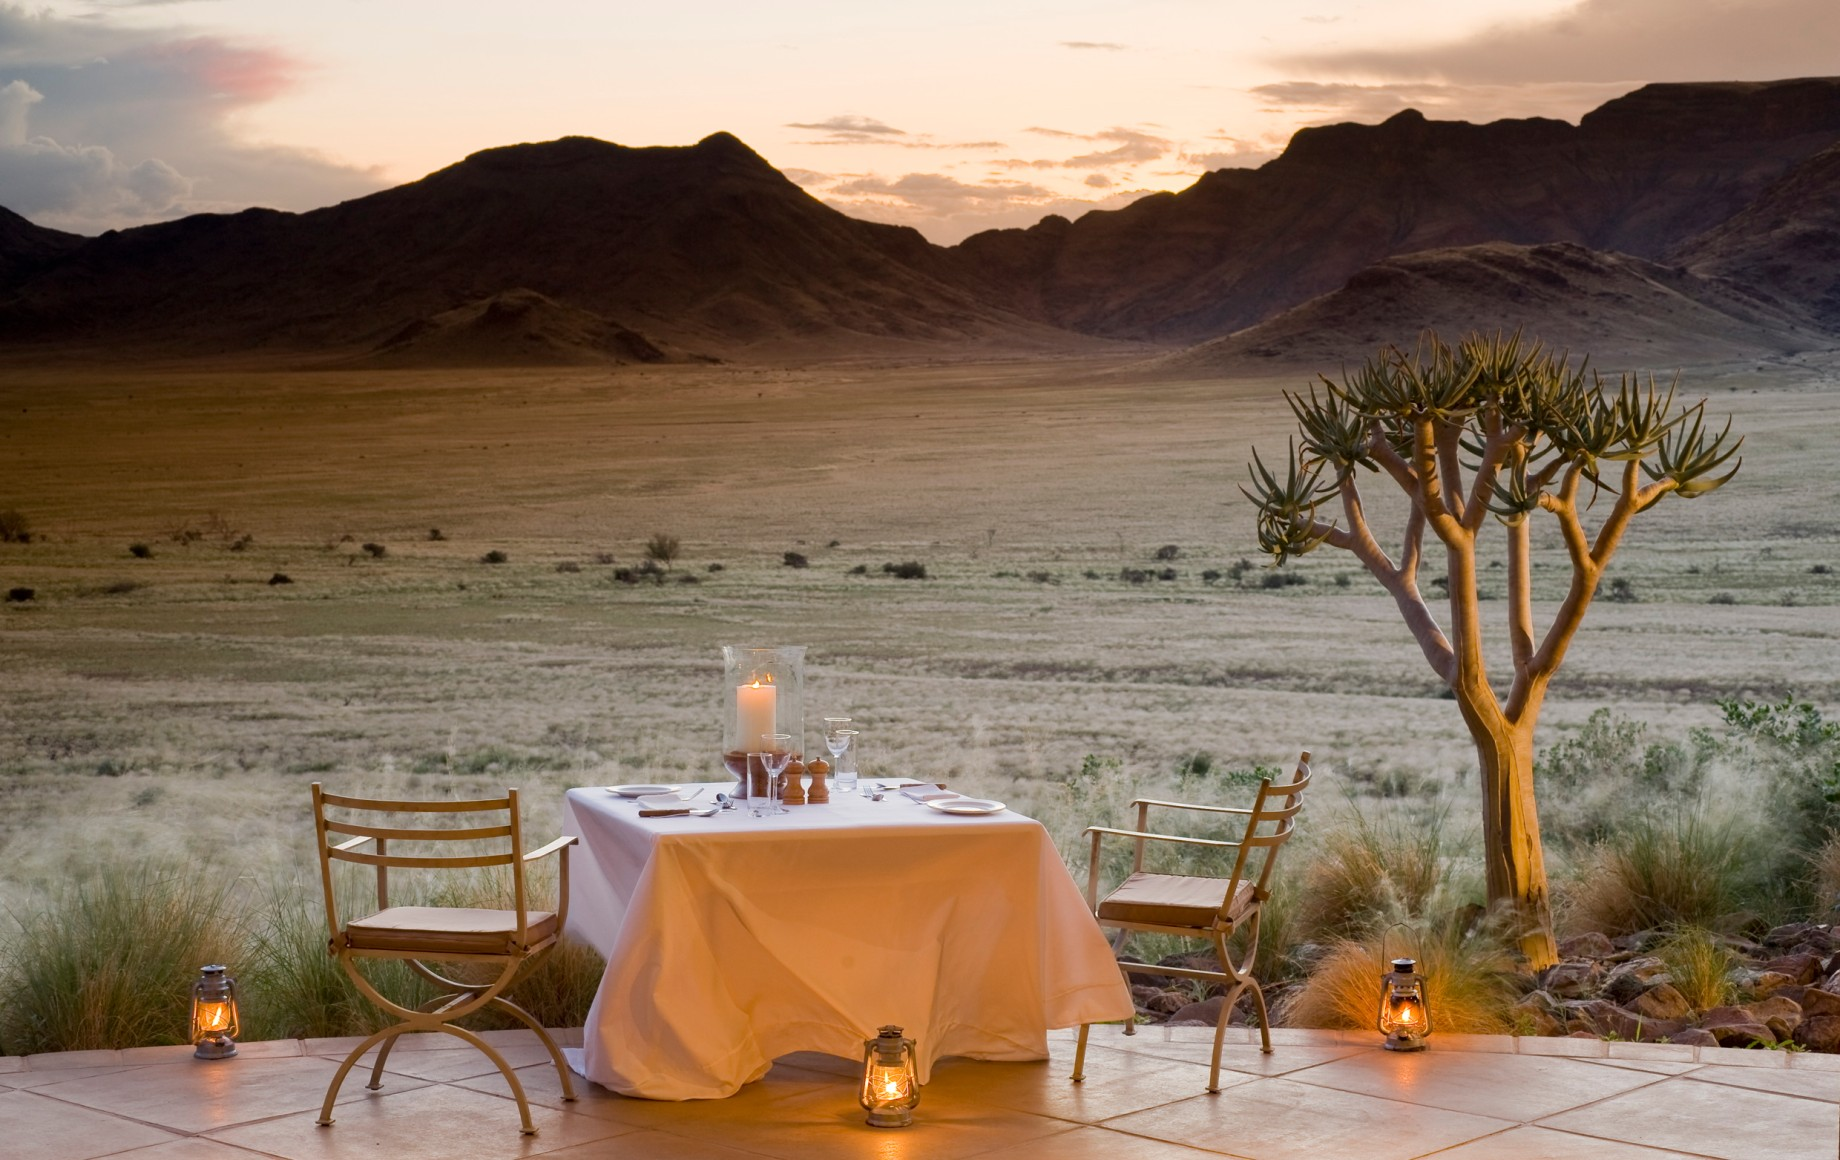 Dinner with a view of the mountains